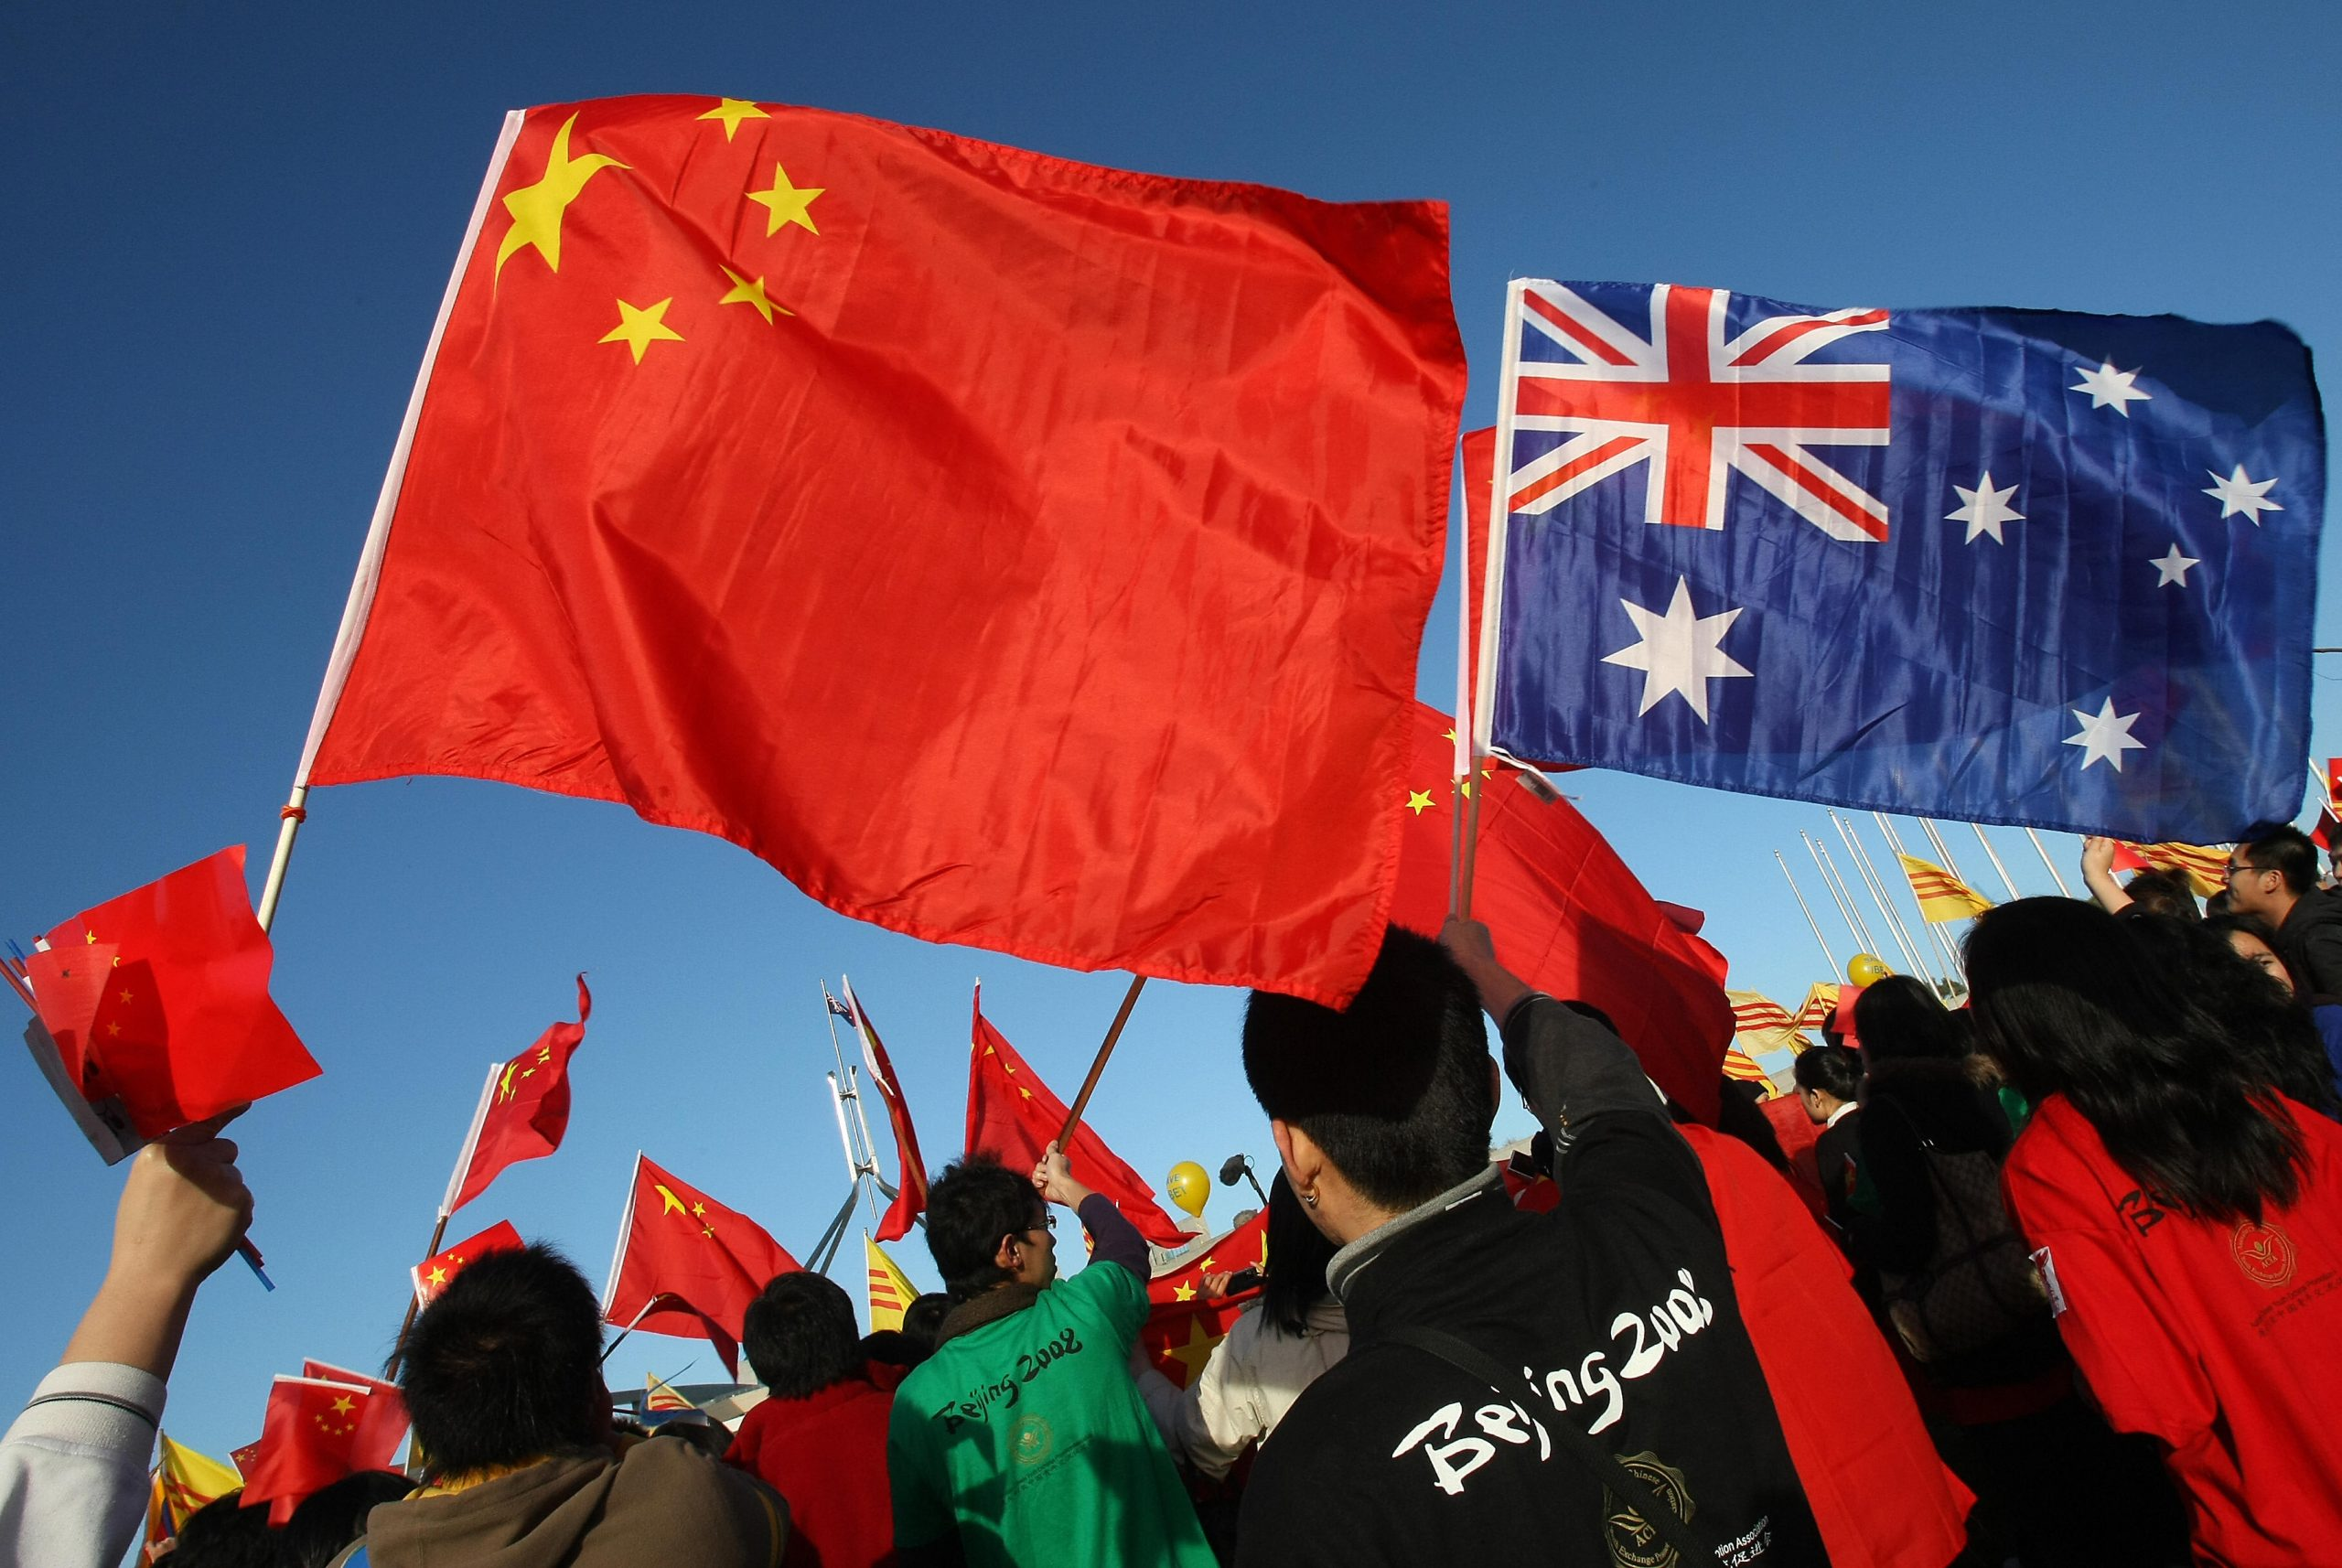 The former Australian prime minister said Australia and China need to find common ground